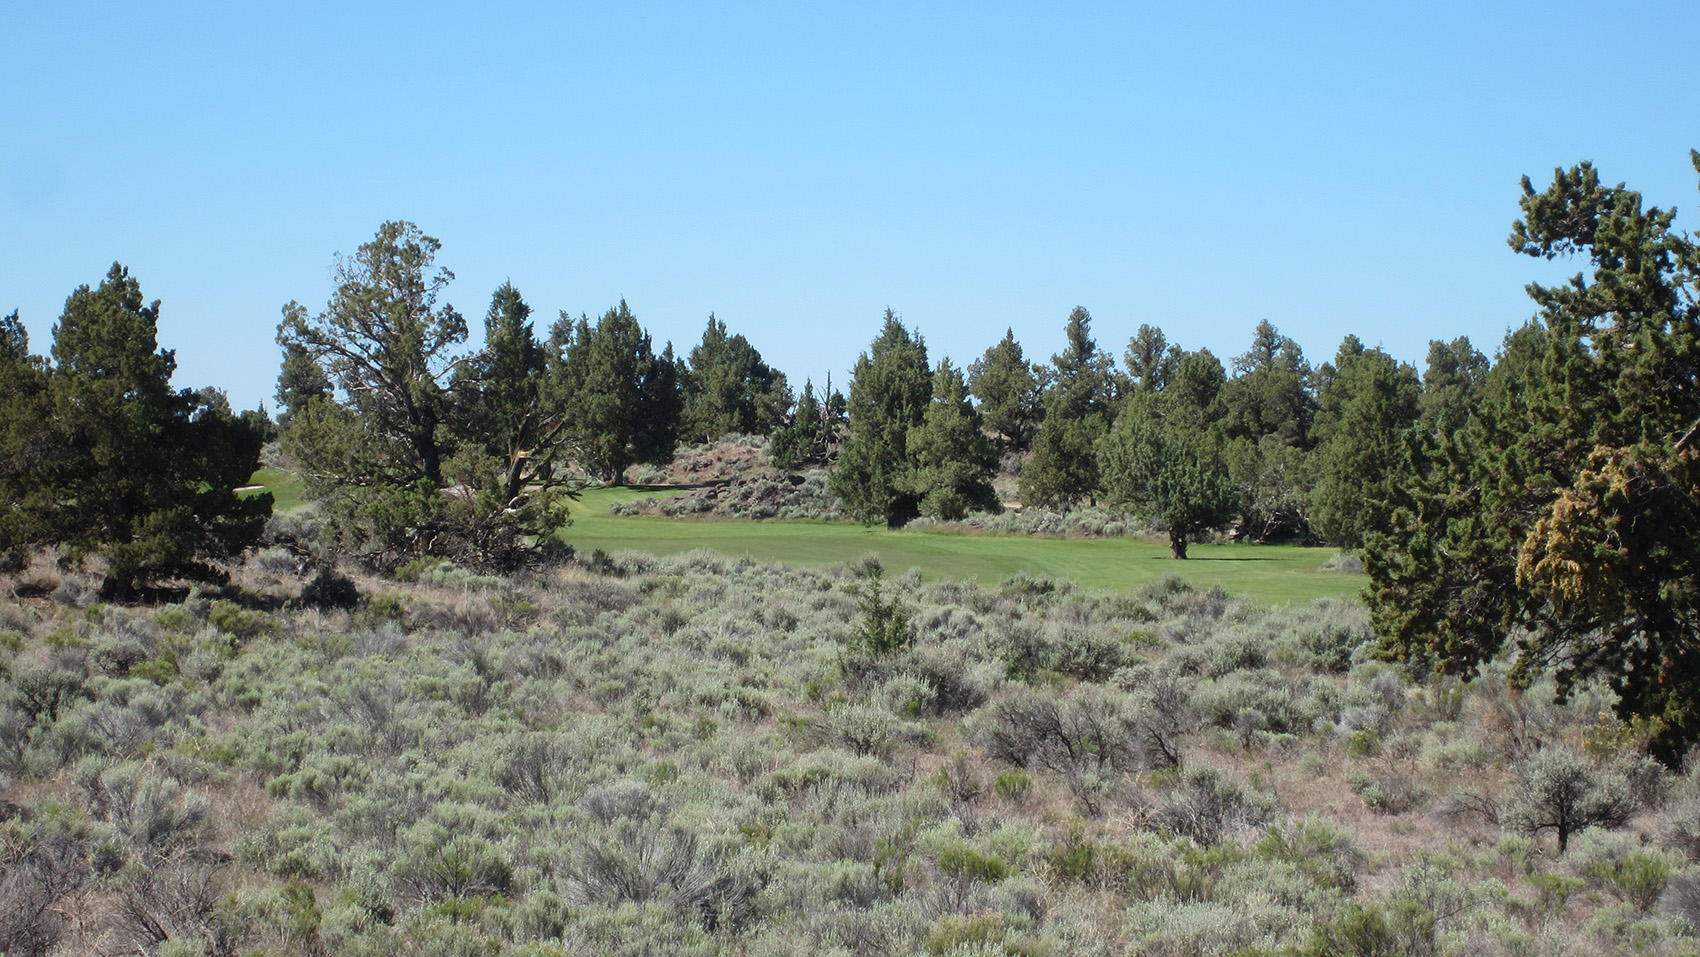 Pronghorn (Nicklaus) 6th zoom